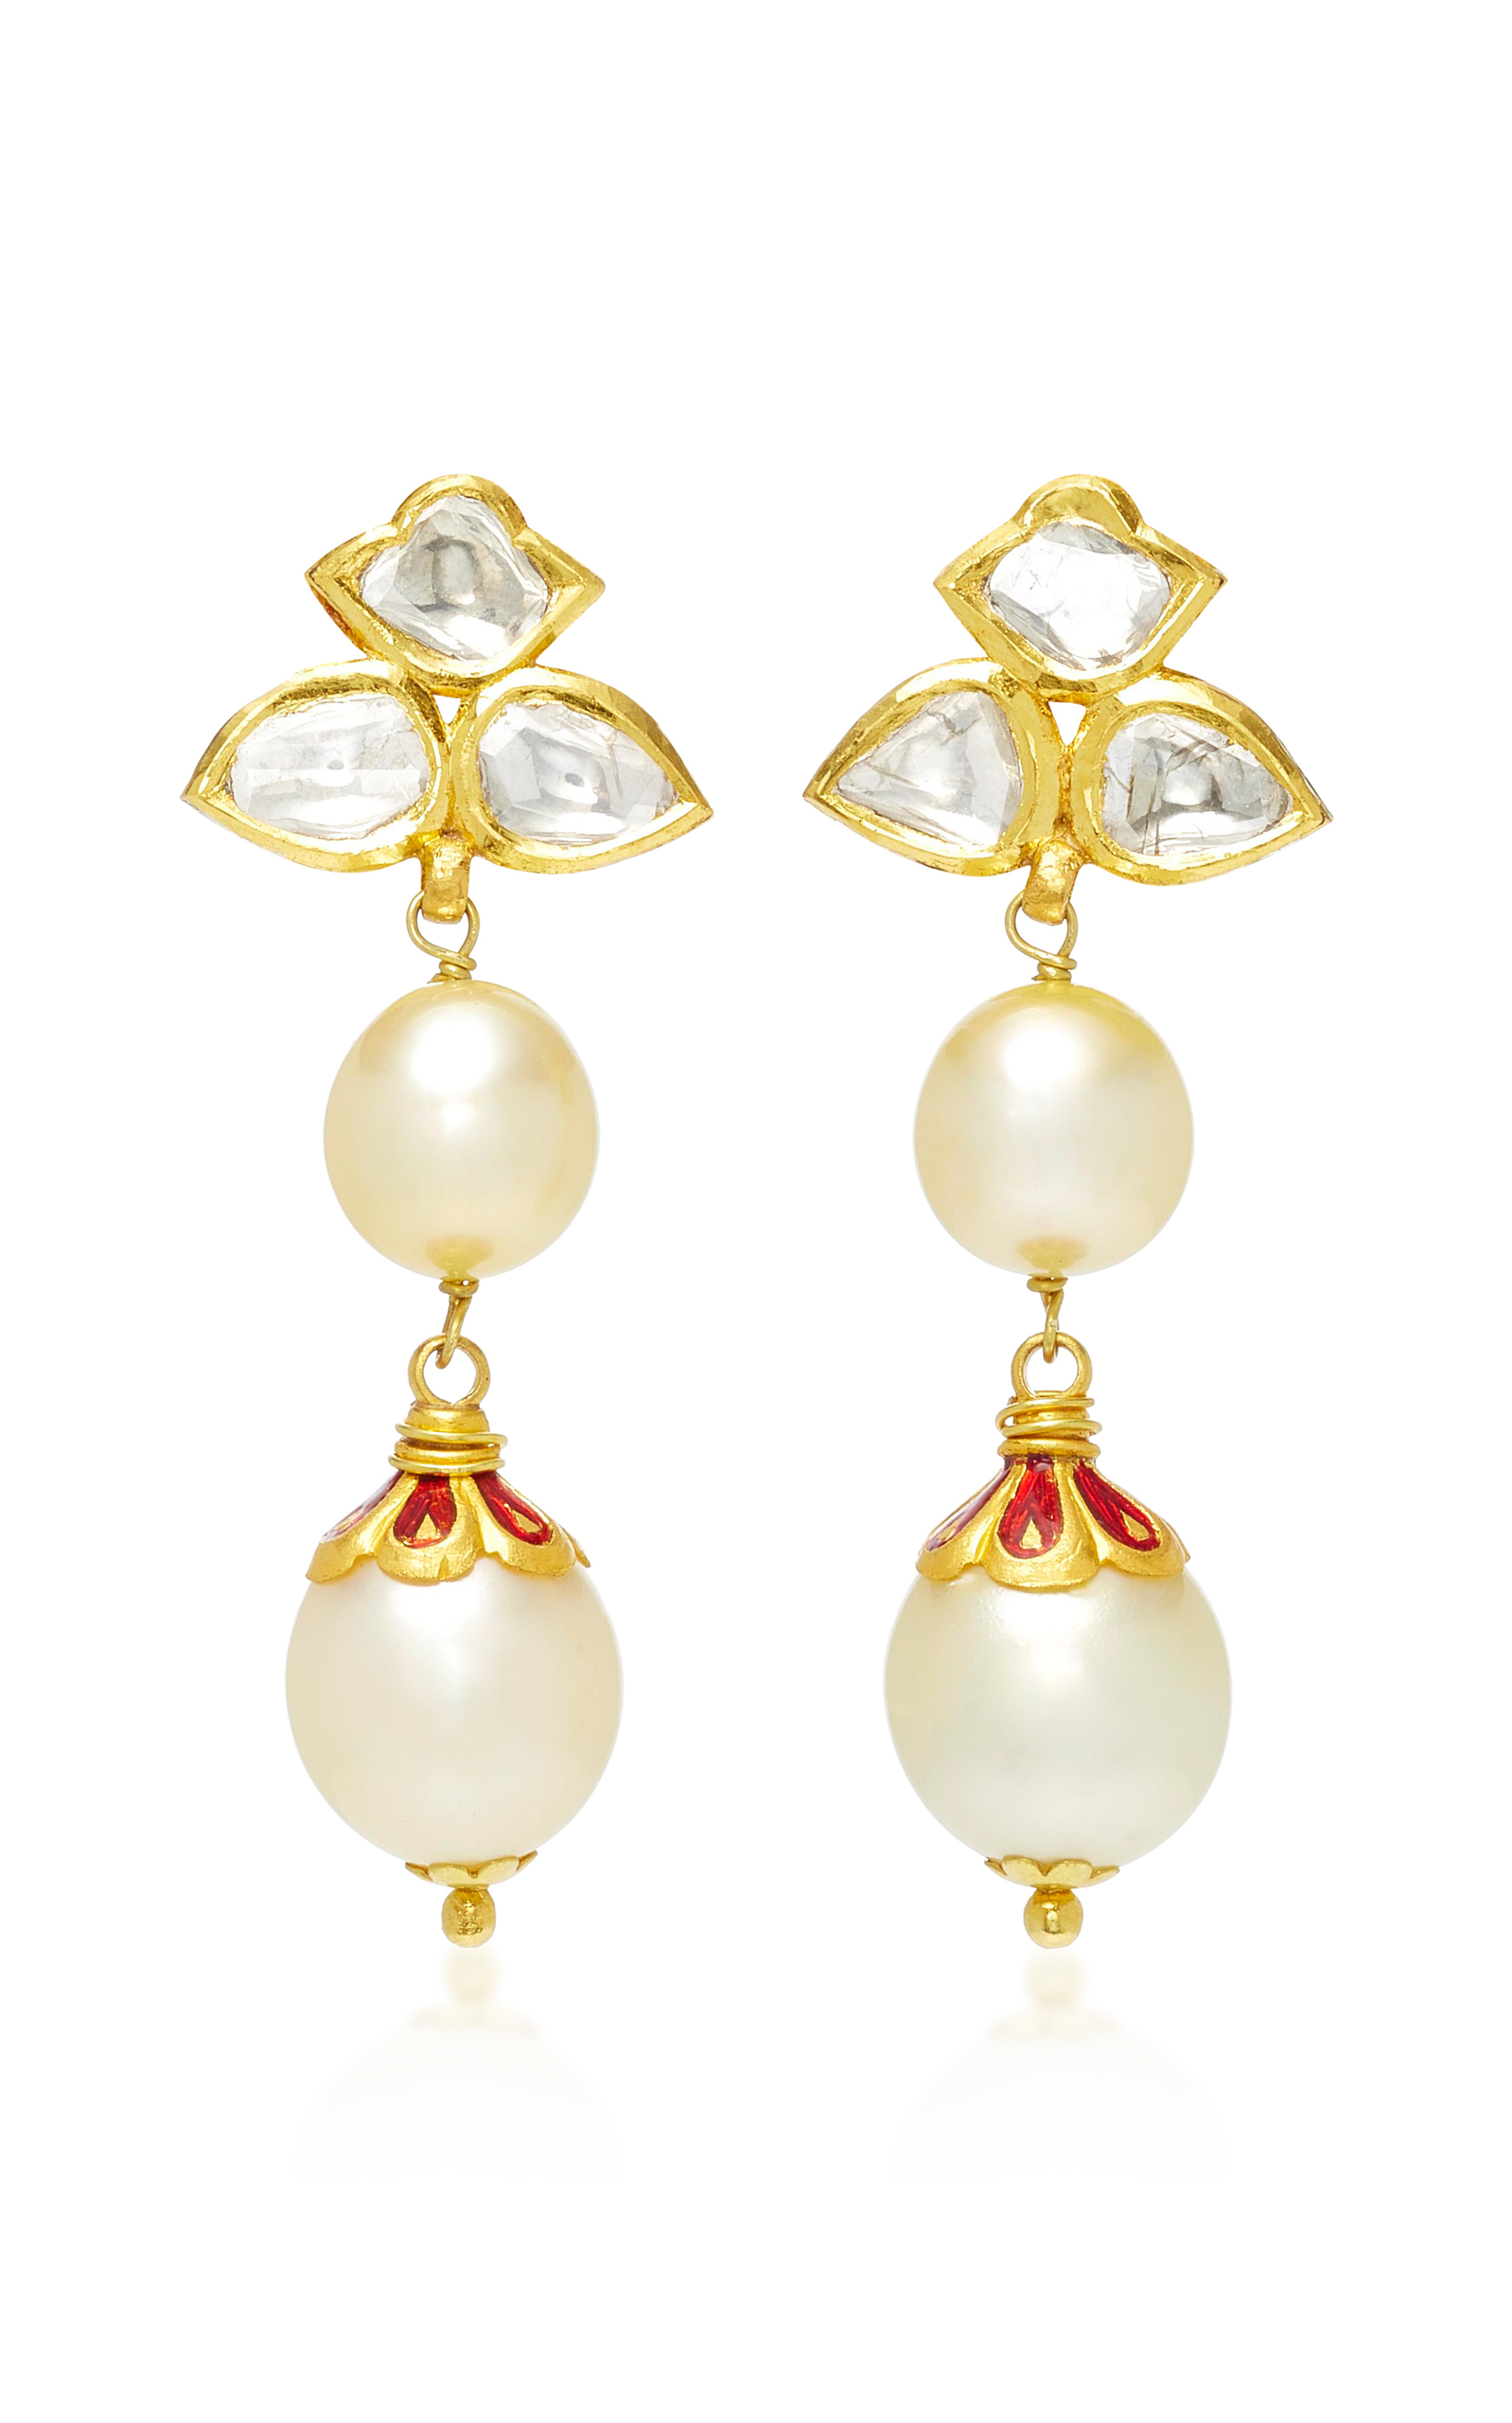 sgs detail jewellery products spec dv earrings gold ee